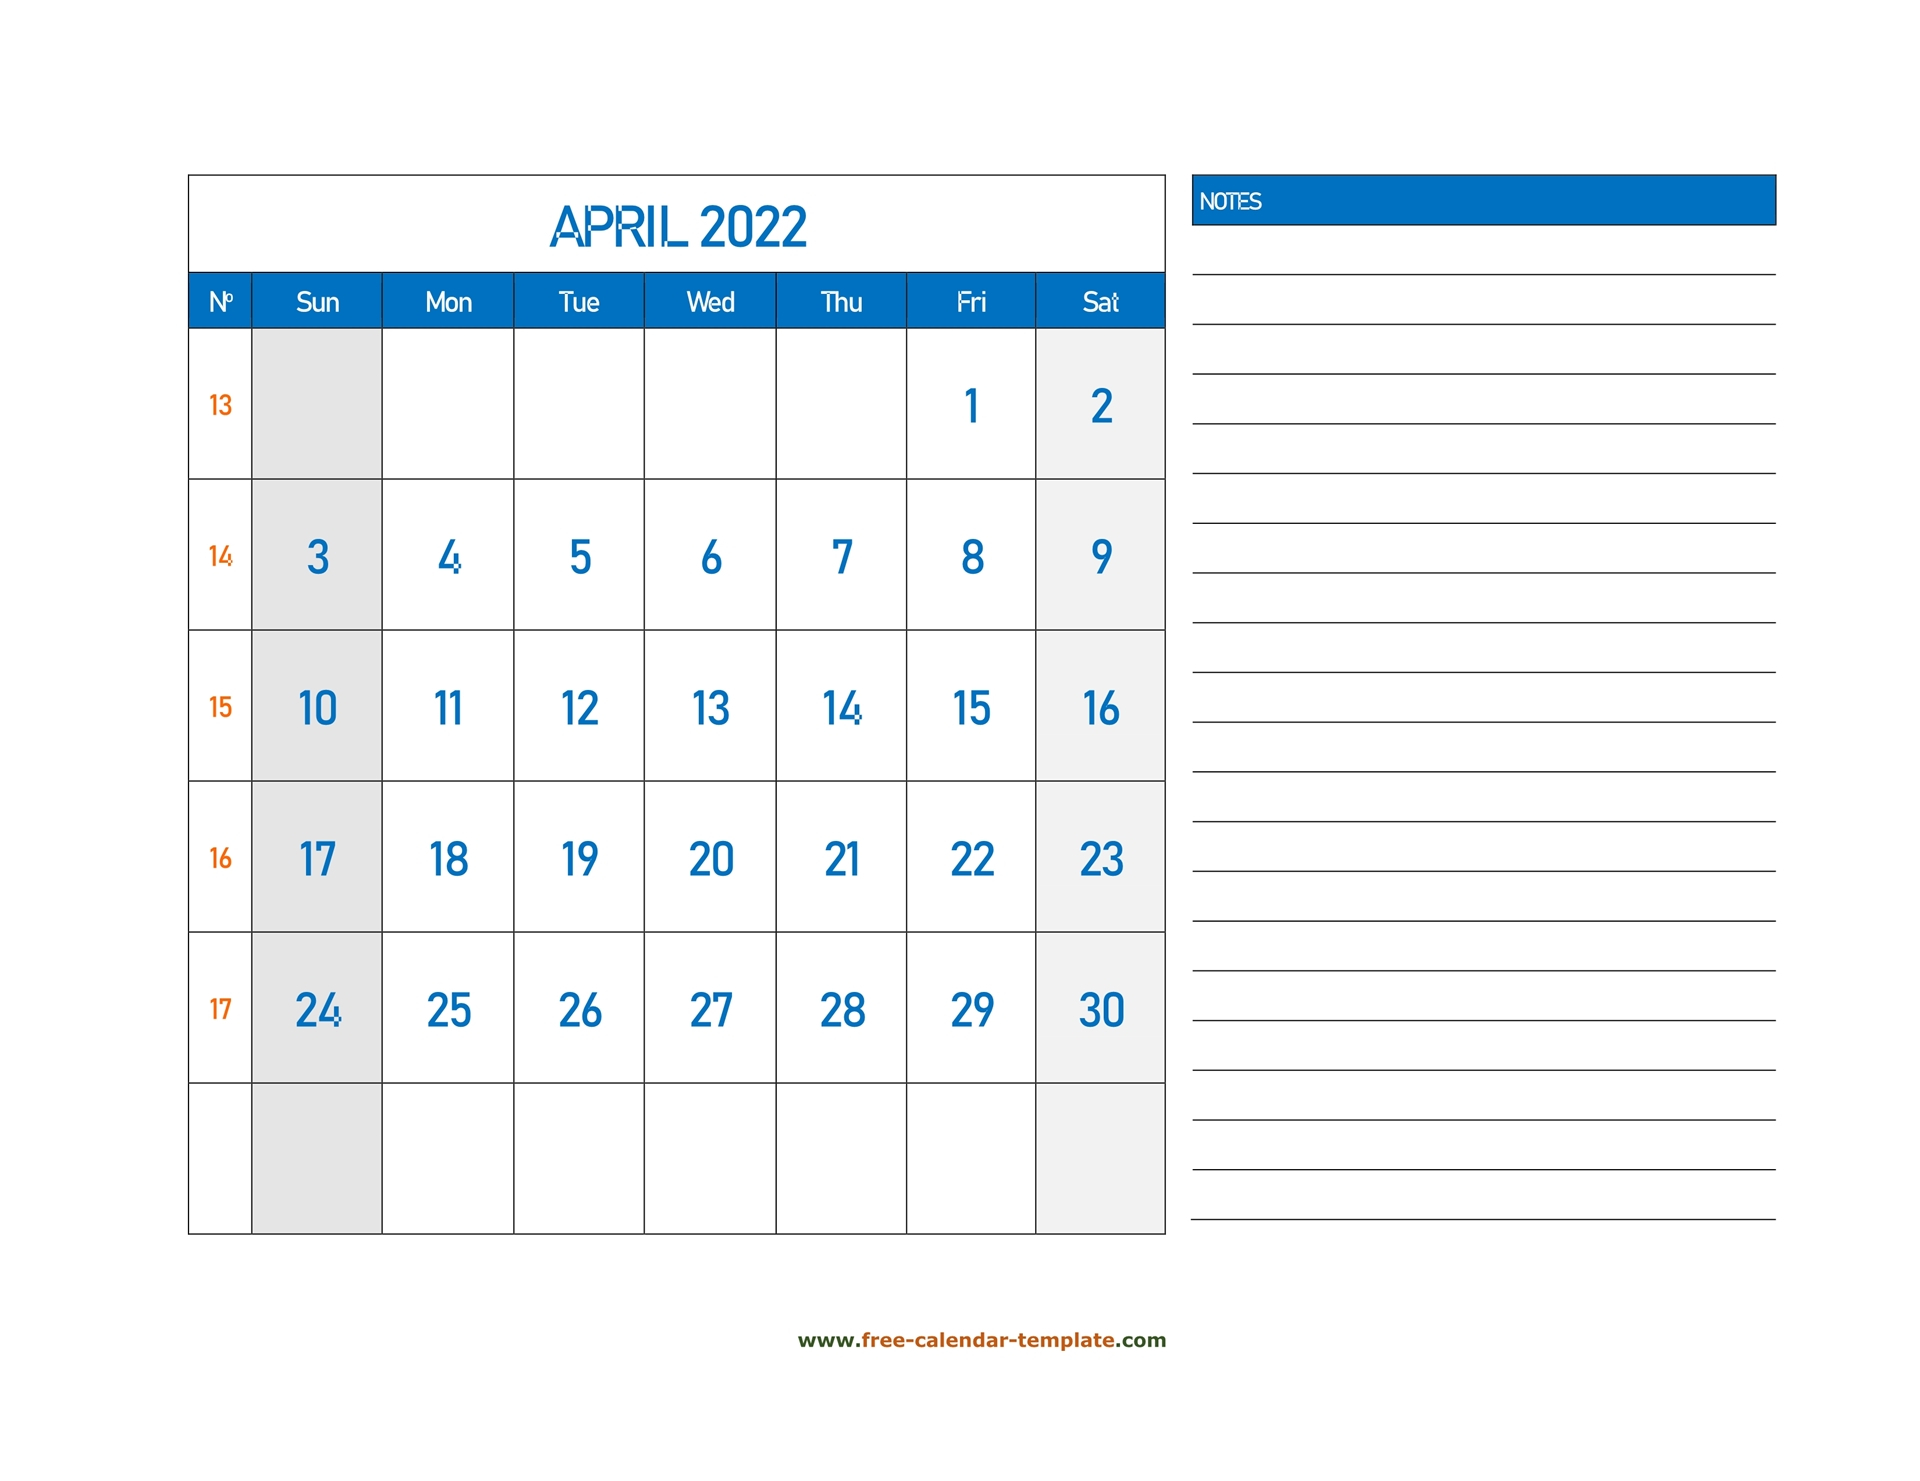 April Calendar 2022 Grid Lines For Holidays And Notes Pertaining To March & April 2022 Calendar Free Printable